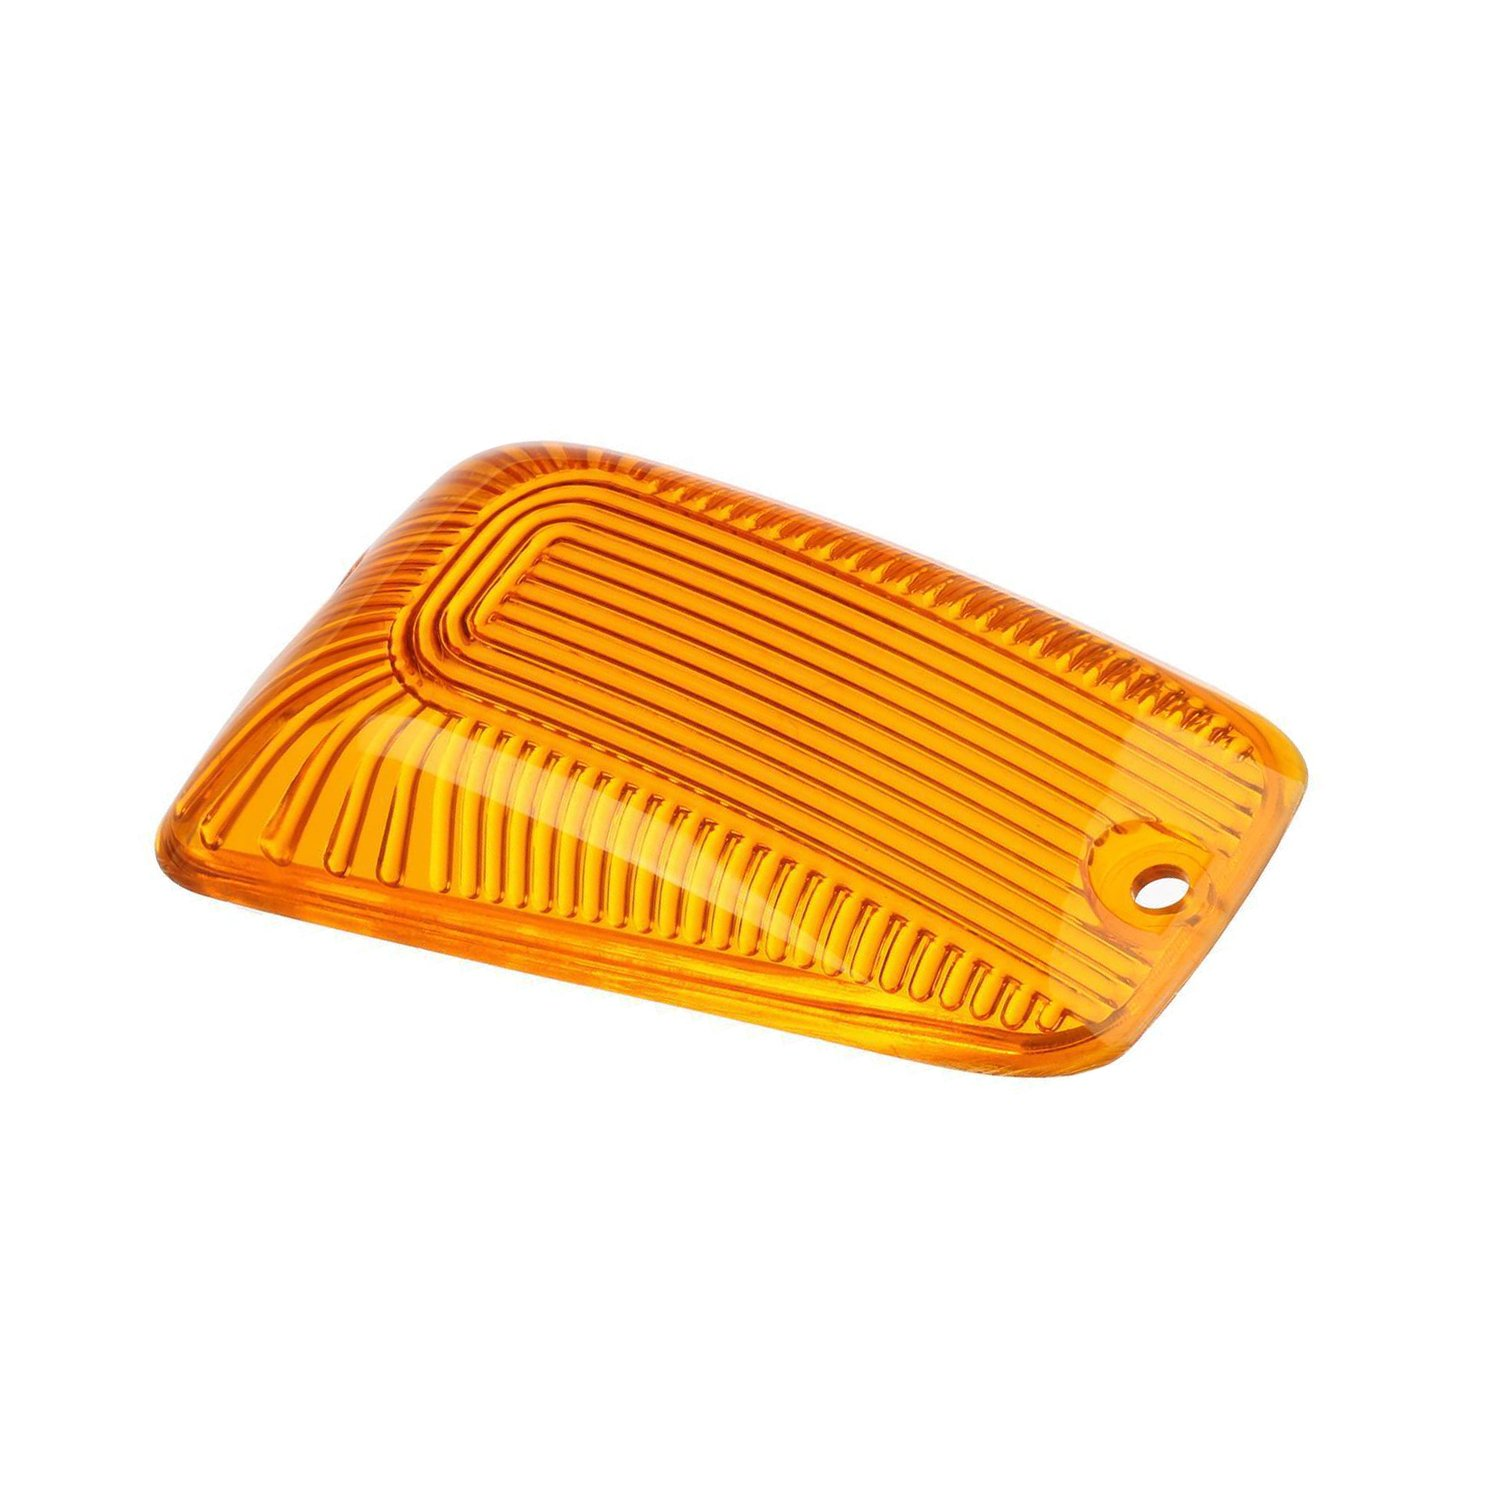 Aftermarket Replacement Roof Cab Marker Lights Lens Cab Lights Cover for 1988-2000 GMC C//K 1500 2500 3500HD